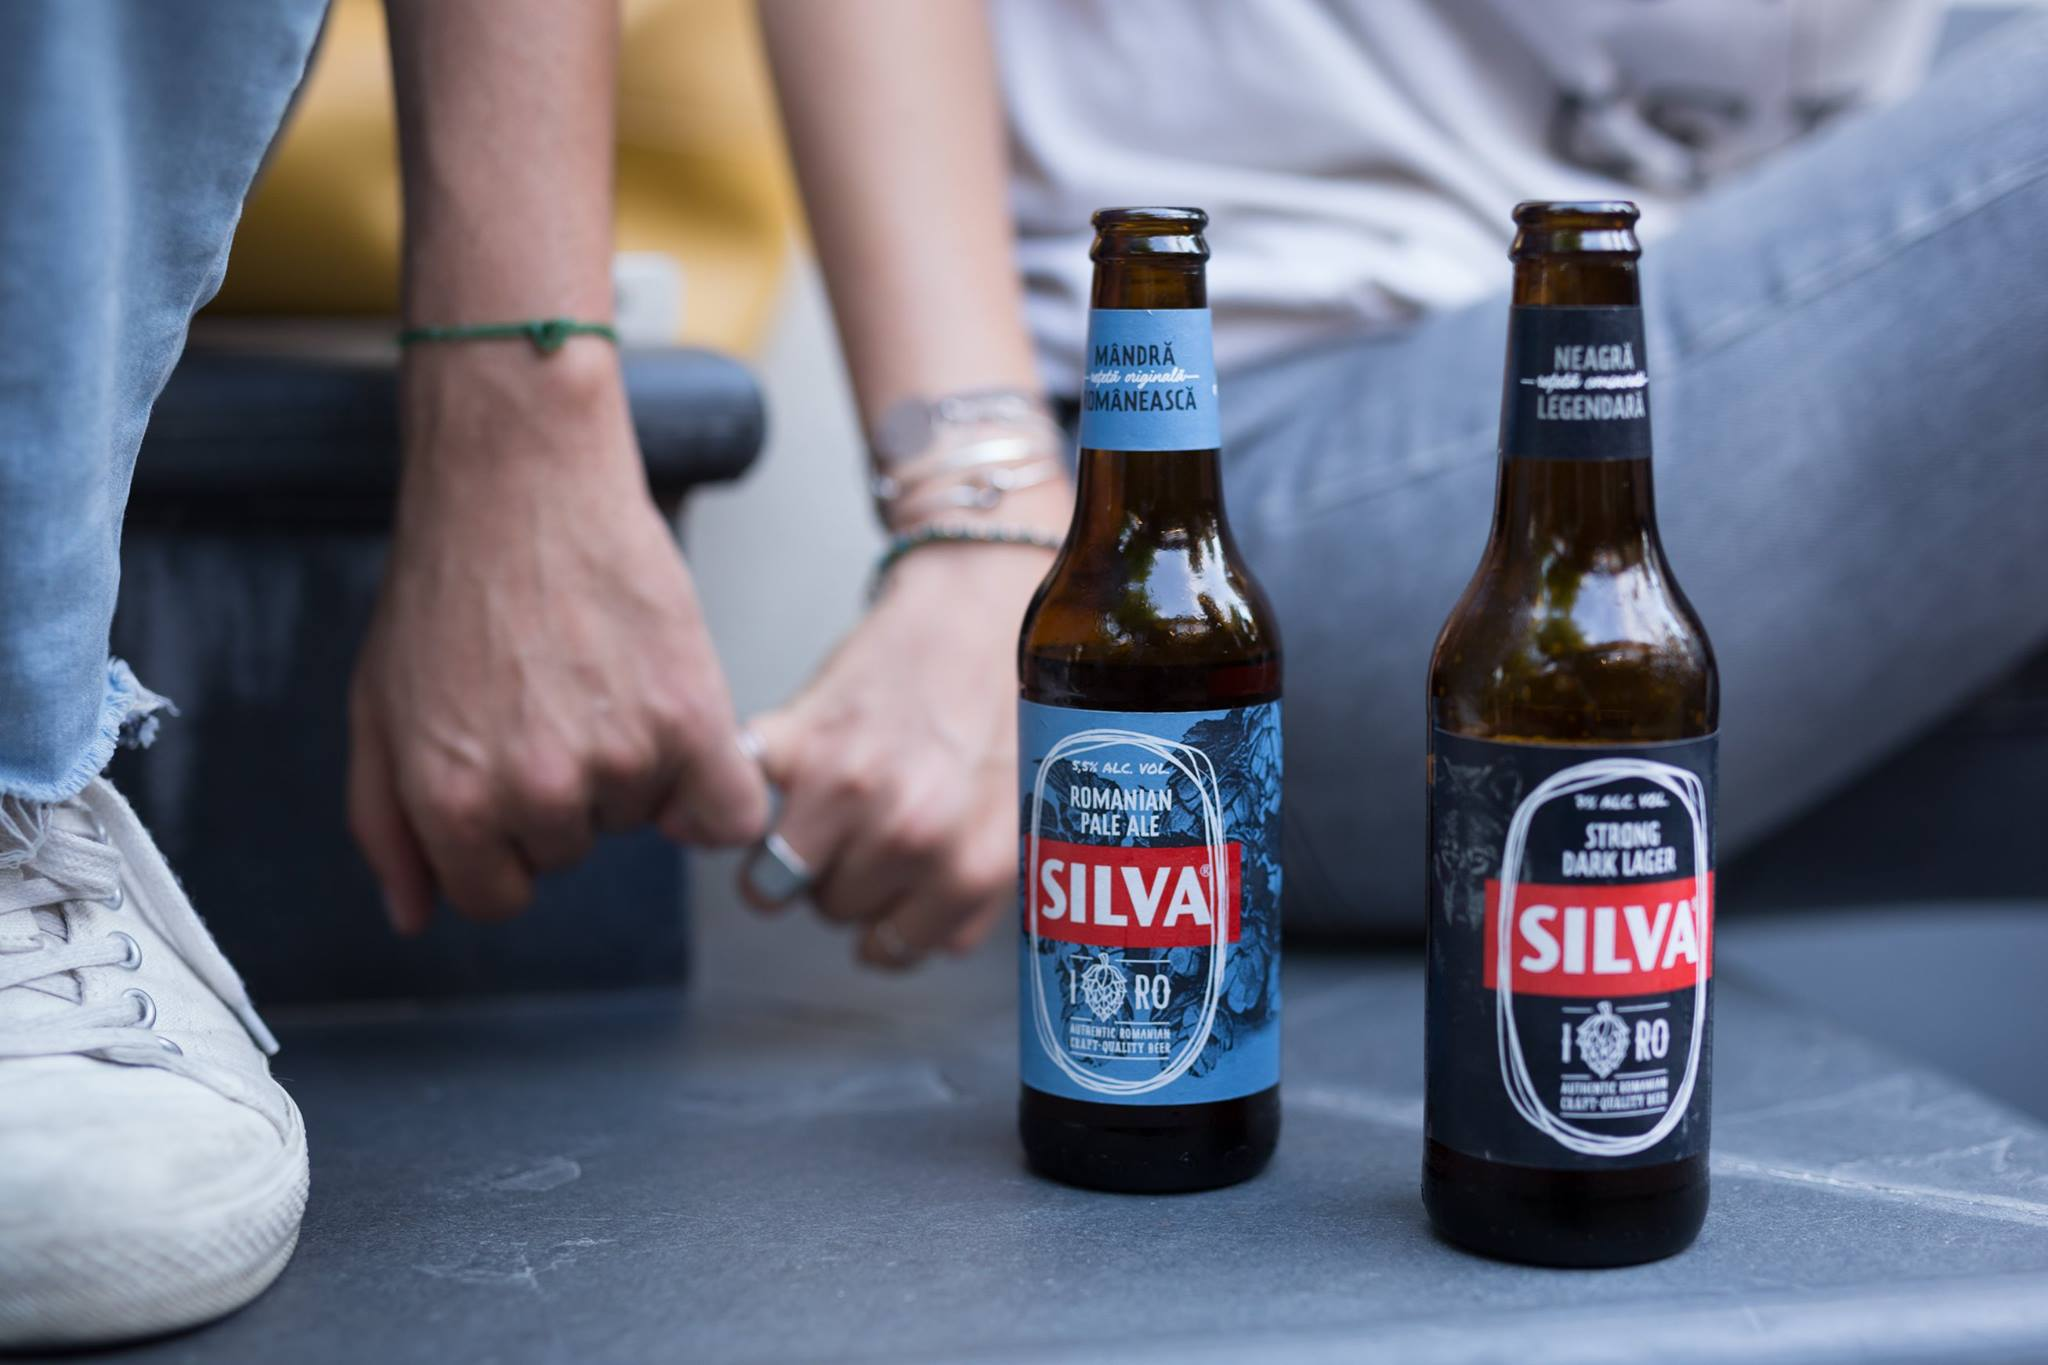 09-Silva-Packaging-Design-by-Brandient-bottle-Strong-Dark-Lager-and-Romanian-Pale-Ale.jpg